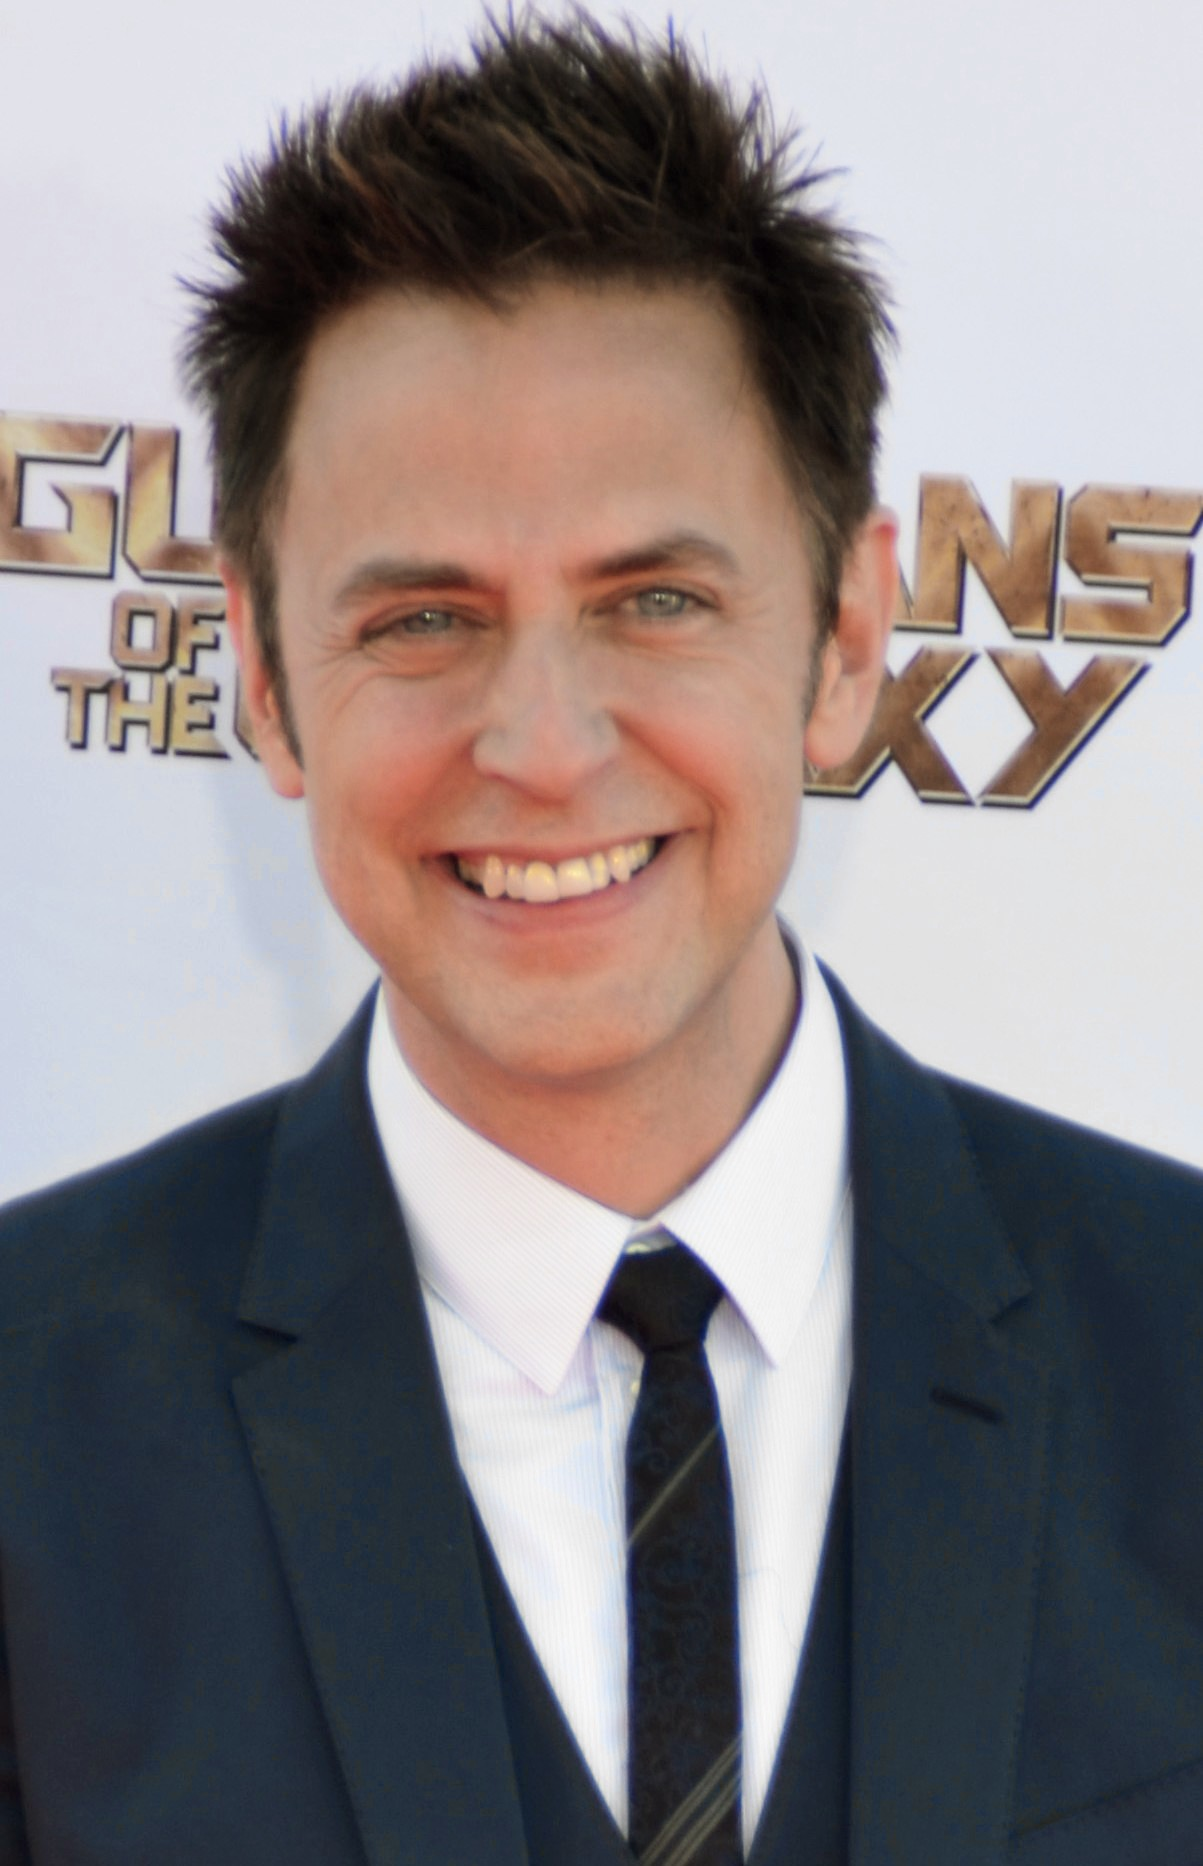 upload.wikimedia.org_wikipedia_commons_8_86_james_gunn_-_guardians_of_the_galaxy_premiere_-_july_2014_28cropped_29.jpg